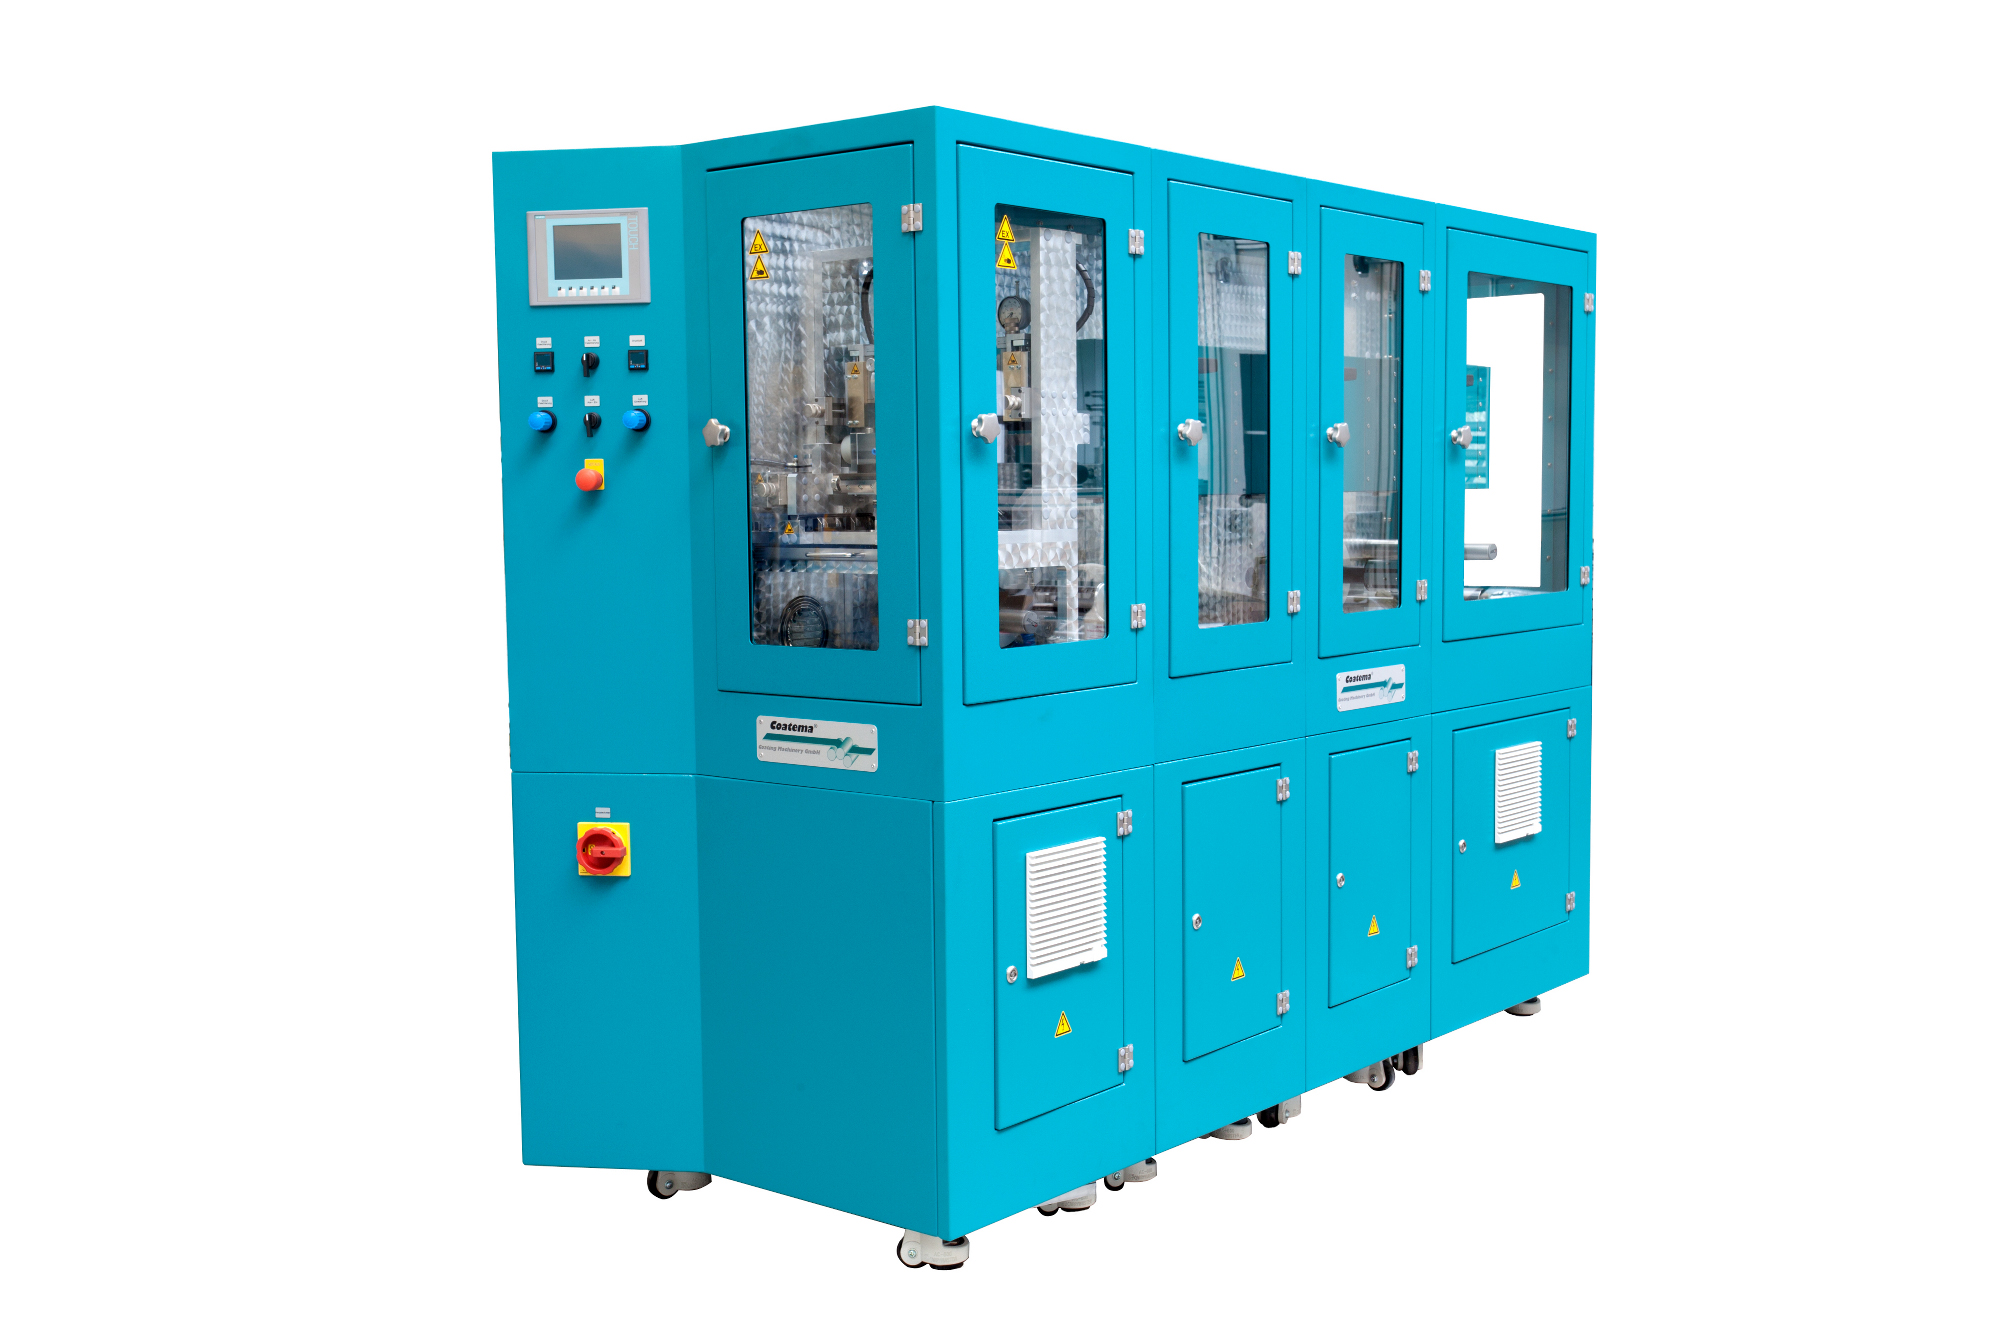 Coatema says it has designed the Smartcoater because early adoption of R2R, at lab or pilot phases, can make scaleup to a full production process easier and less costly.